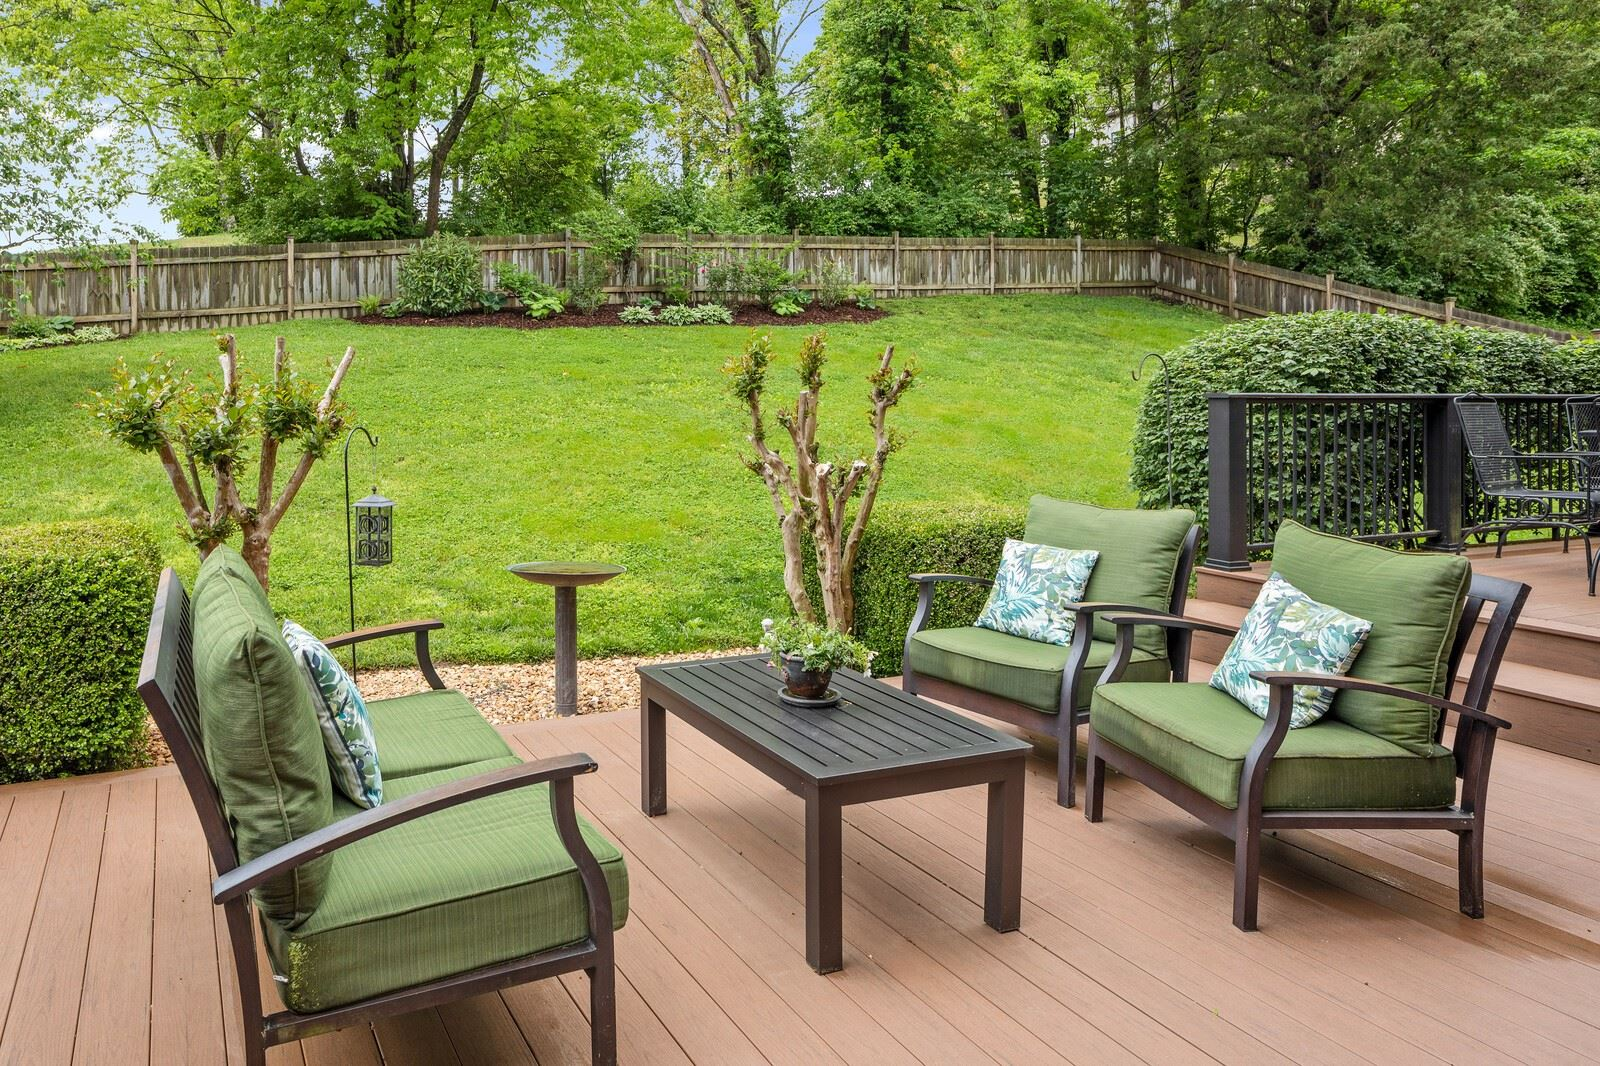 Photo of 9556 Sunnybrook Dr, Brentwood, TN 37027 (MLS # 2251907)